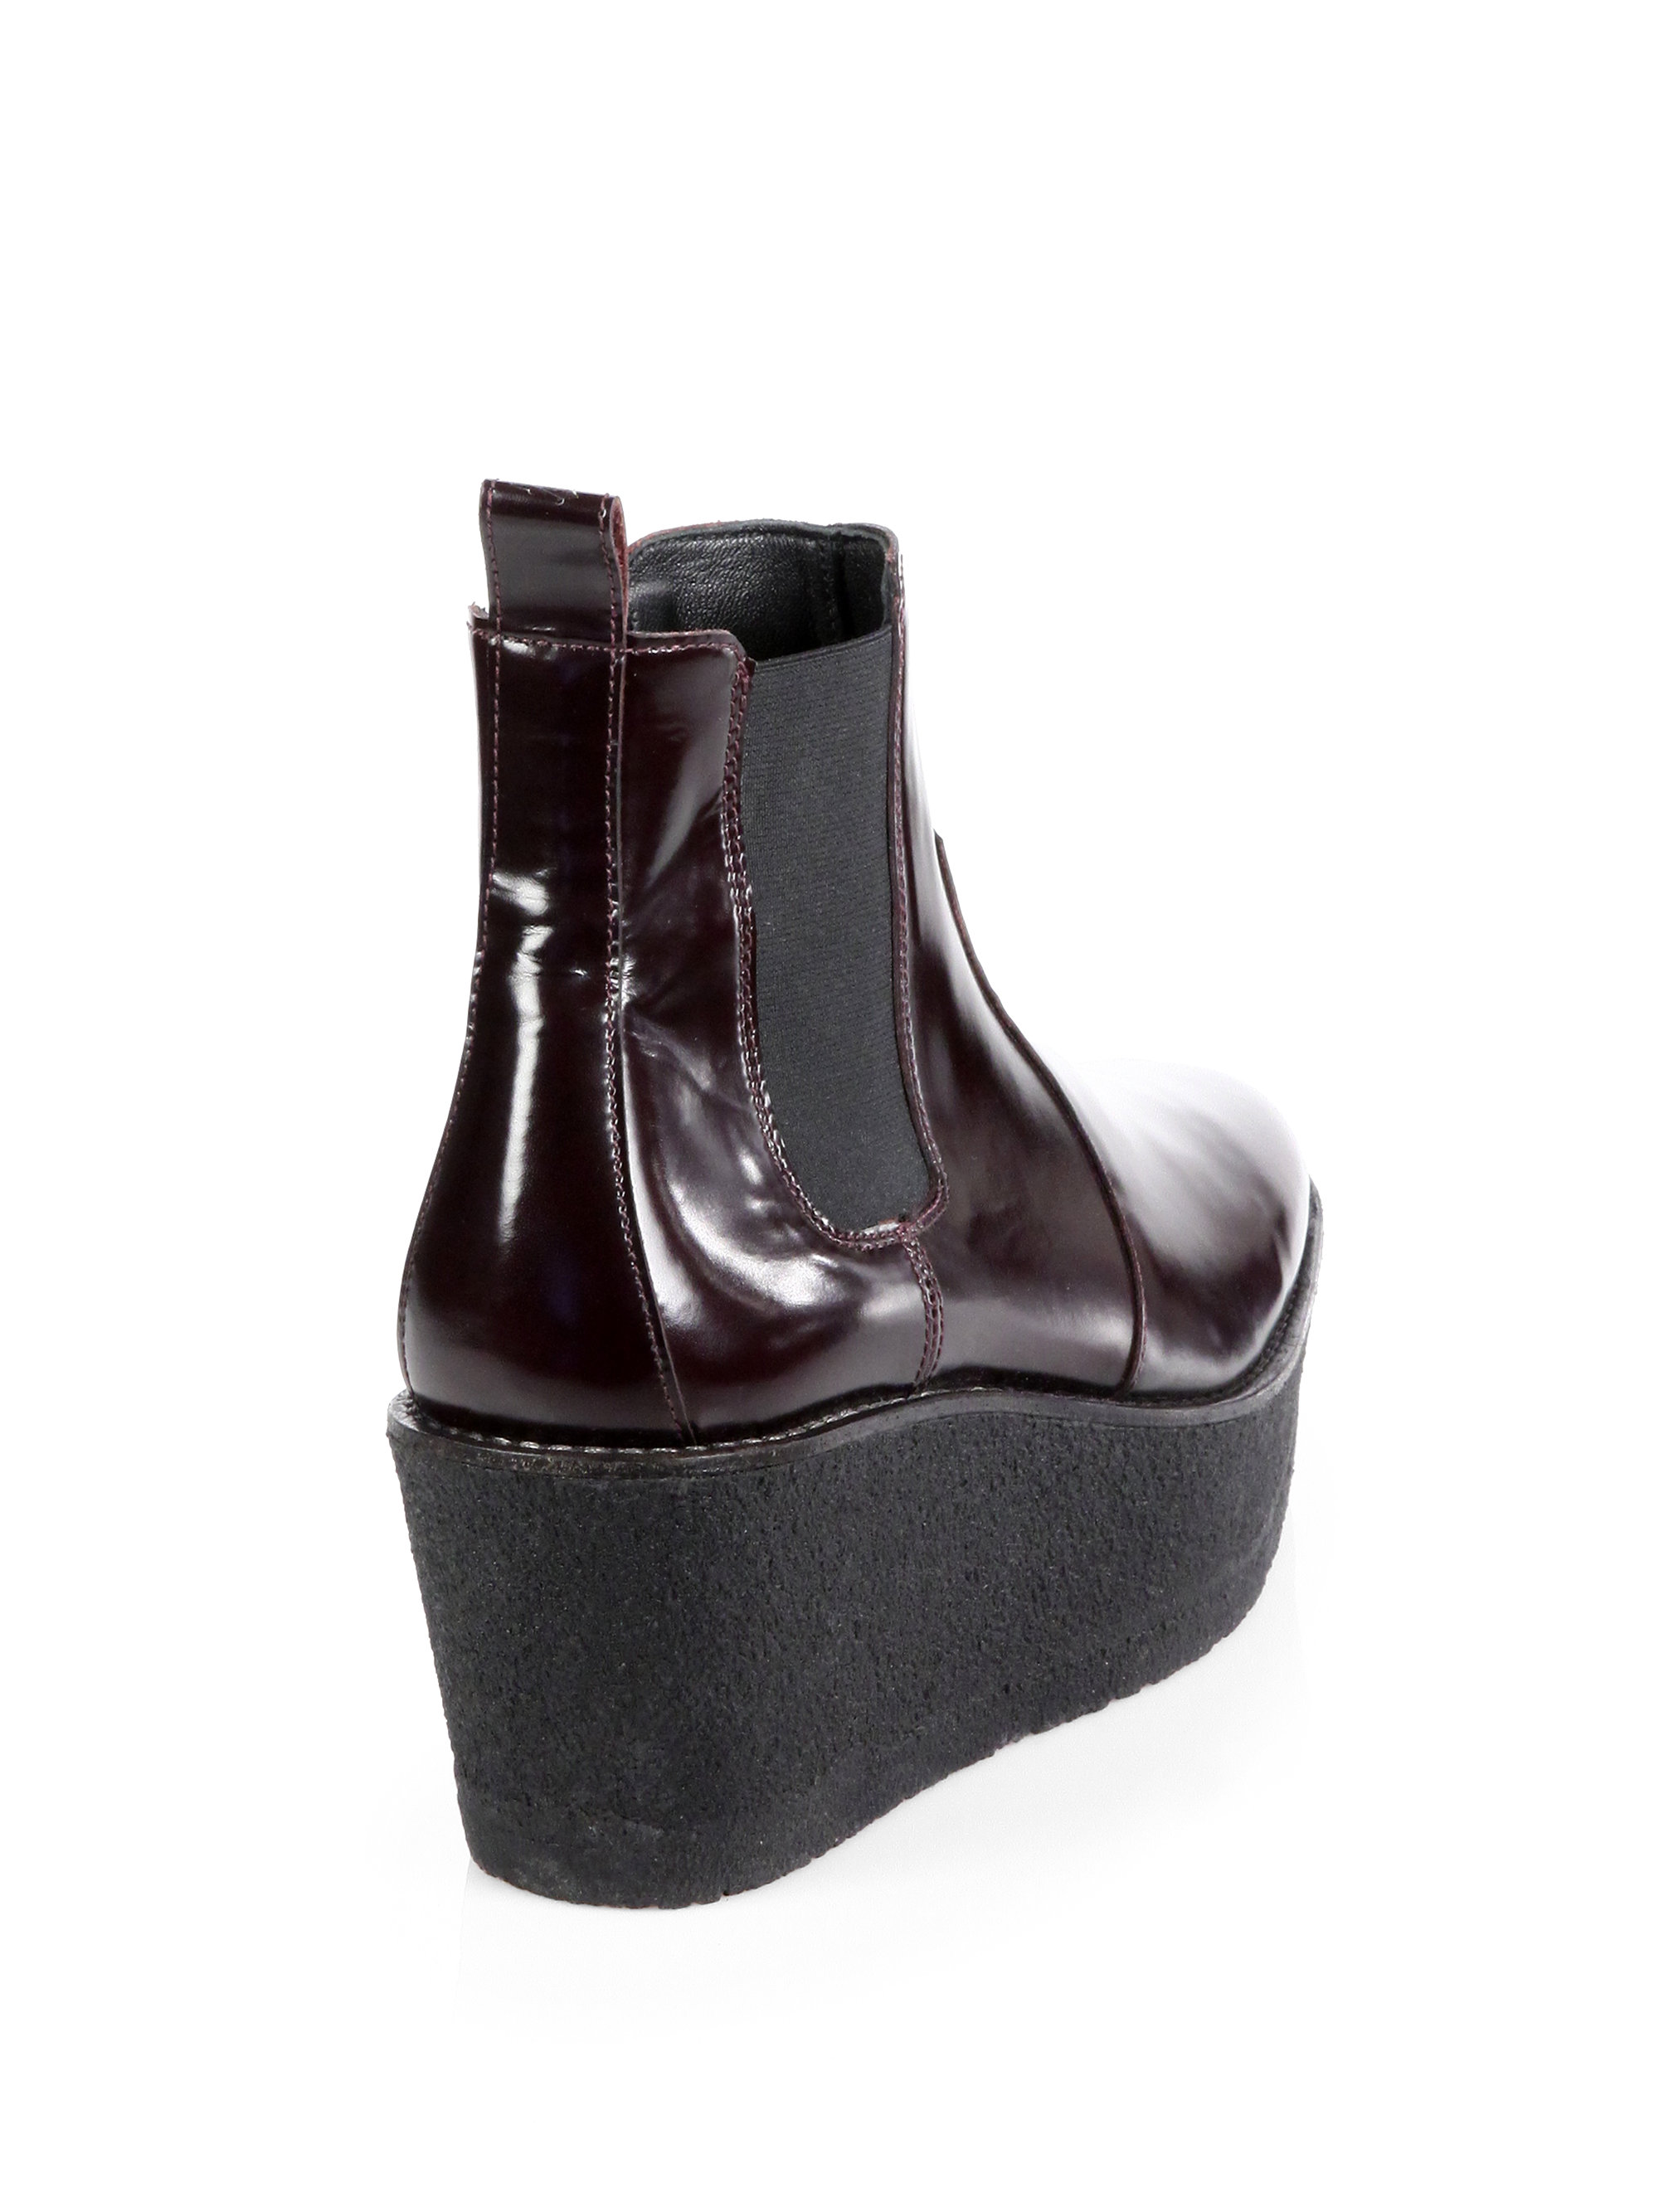 Pierre hardy Leather Platform Wedge Ankle Boots in Red | Lyst